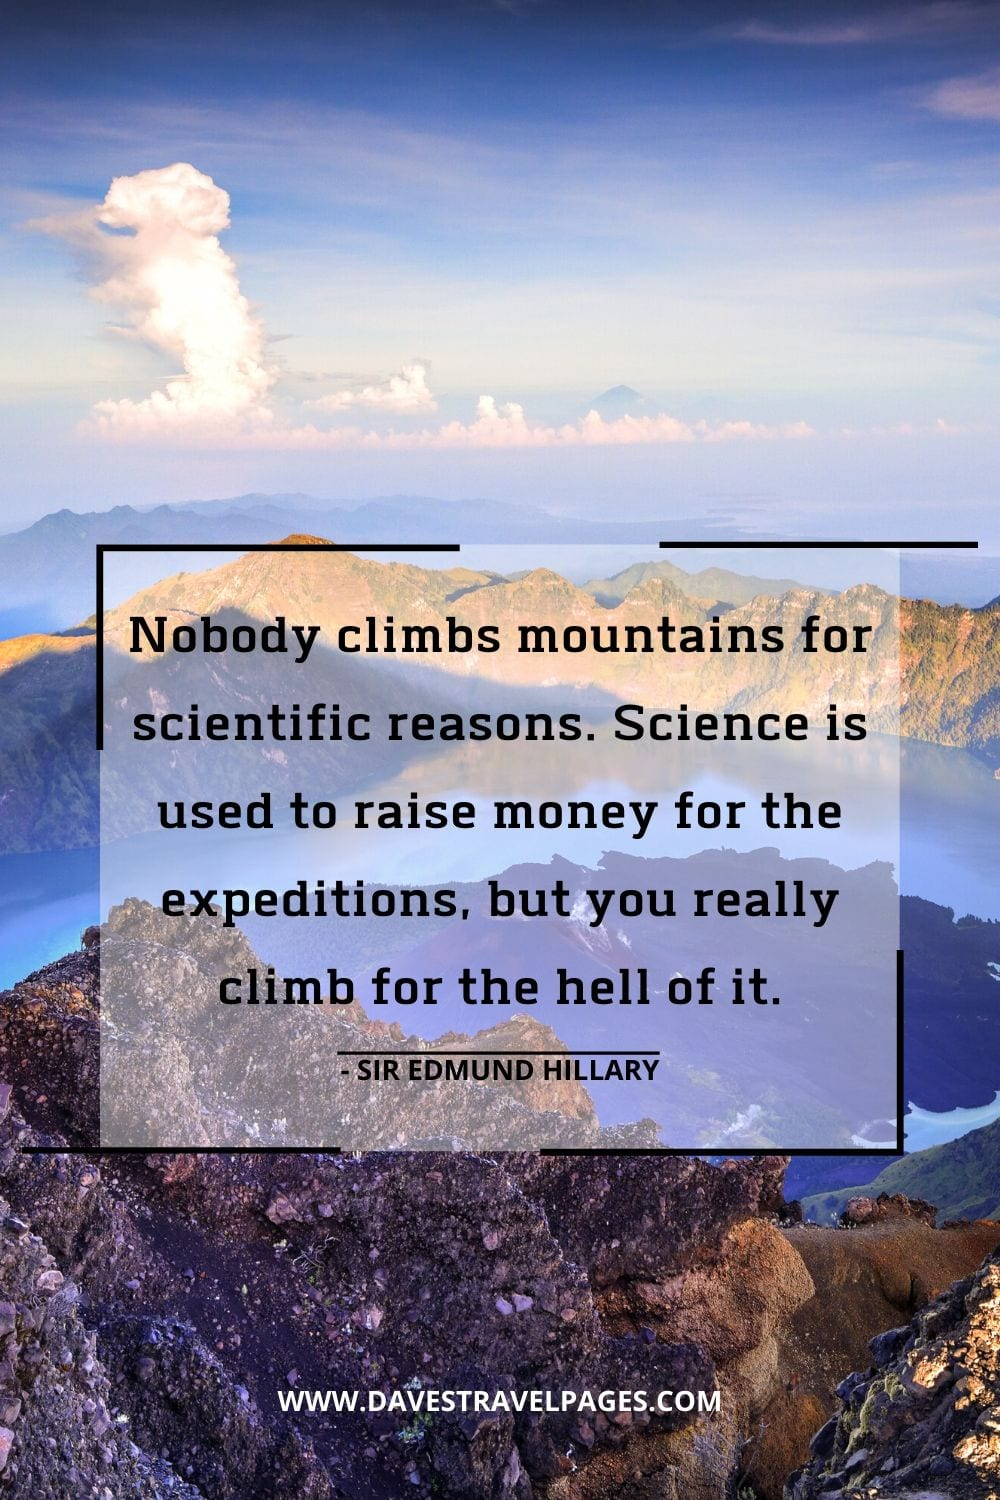 Expedition Quotes: Nobody climbs mountains for scientific reasons. Science is used to raise money for the expeditions, but you really climb for the hell of it.- Sir Edmund Hillary